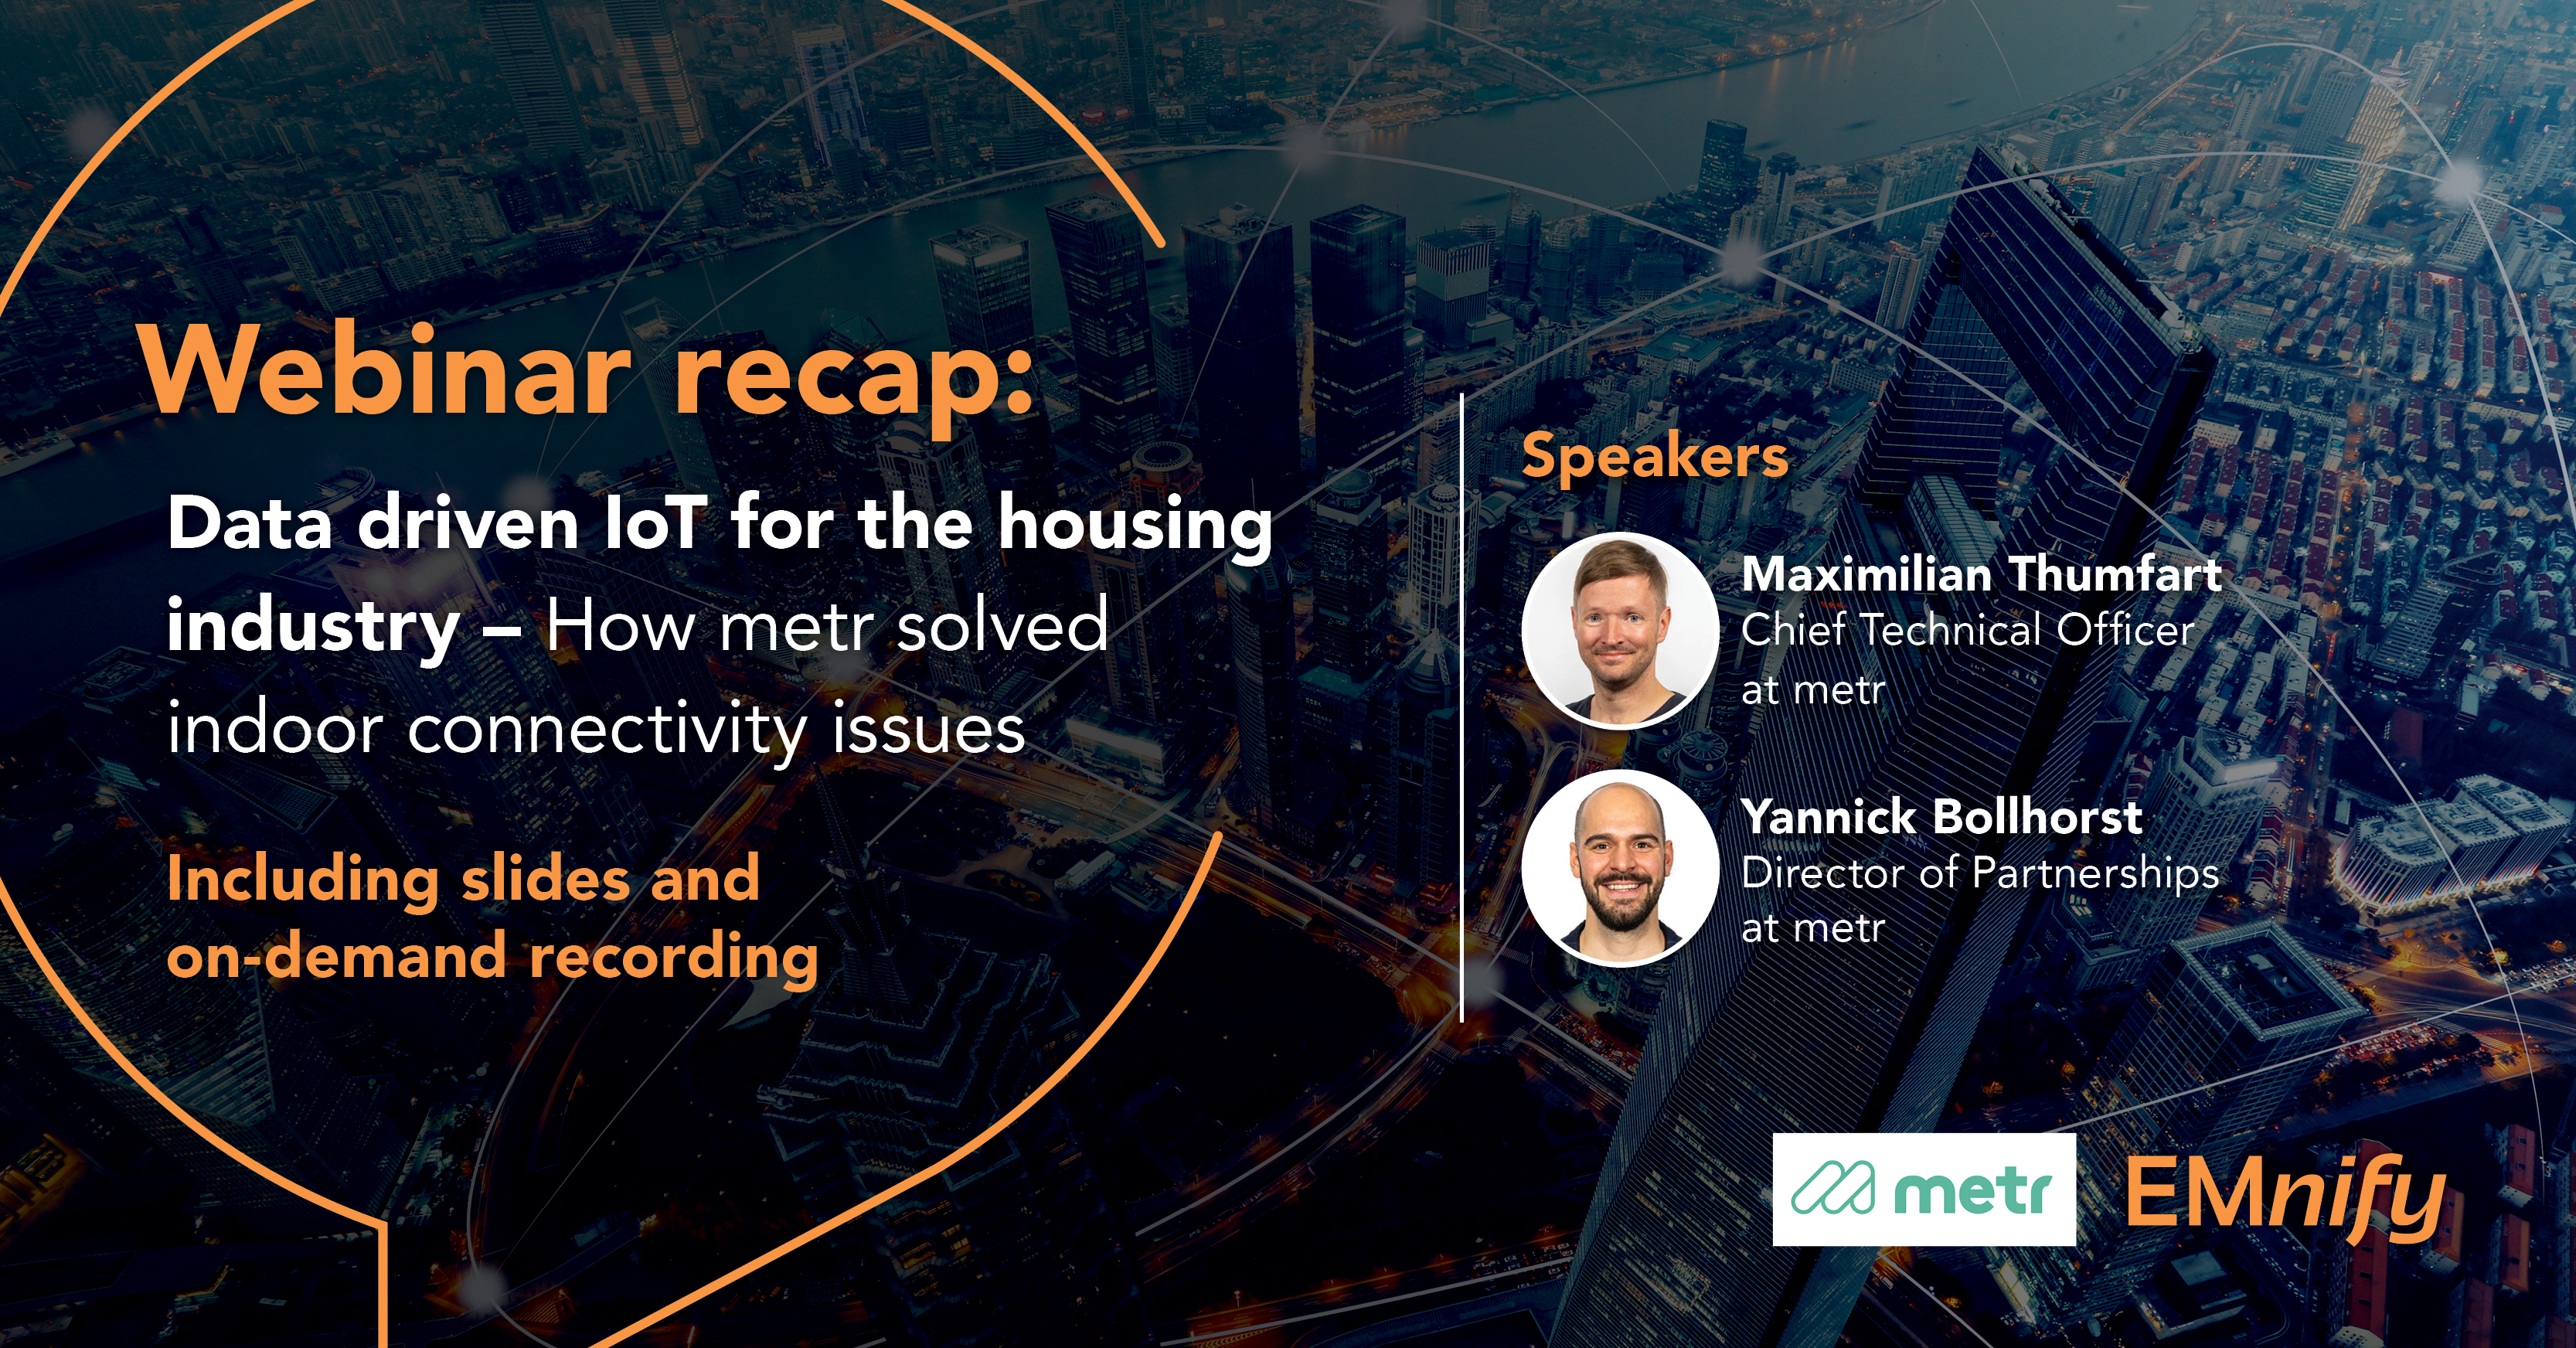 Webinar recap: Data driven IoT for the housing industry - How metr solved indoor connectivity issues